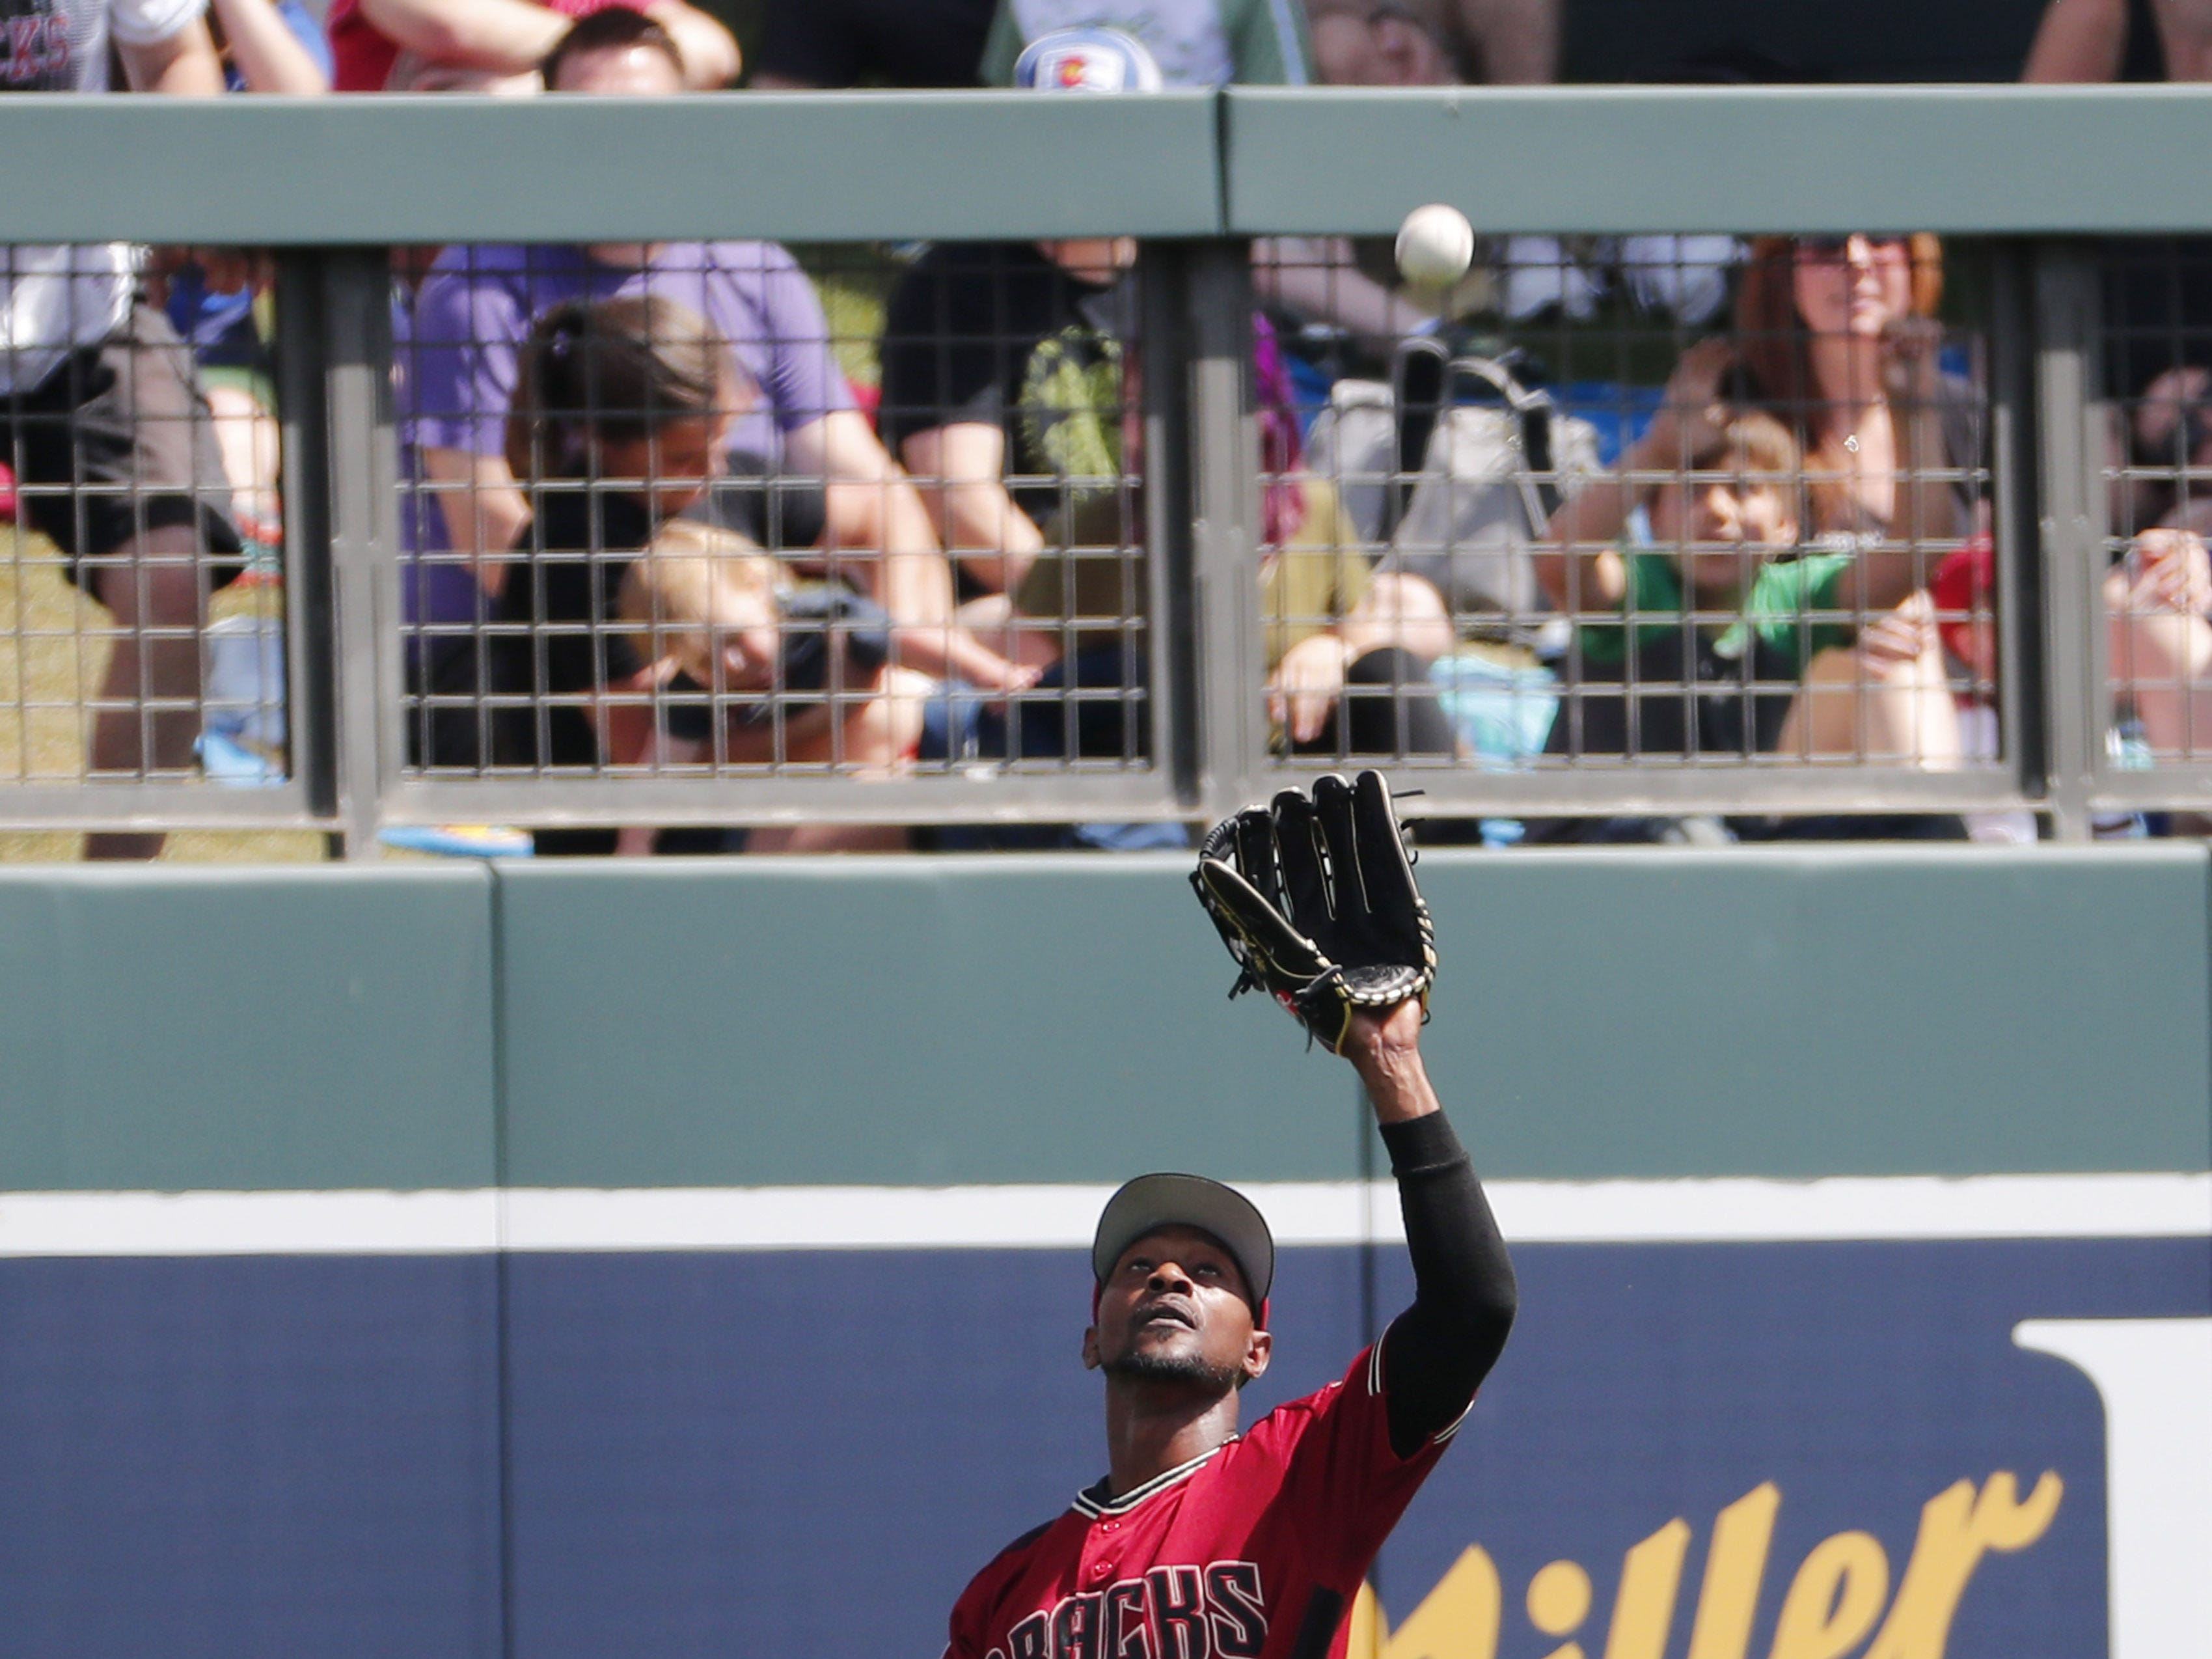 Arizona Diamondbacks center fielder Jarrod Dyson (1) catches a fly ball by Milwaukee Brewers' Lucas Erceg during spring training at Salt River Fields at Talking Stick March 24, 2019.